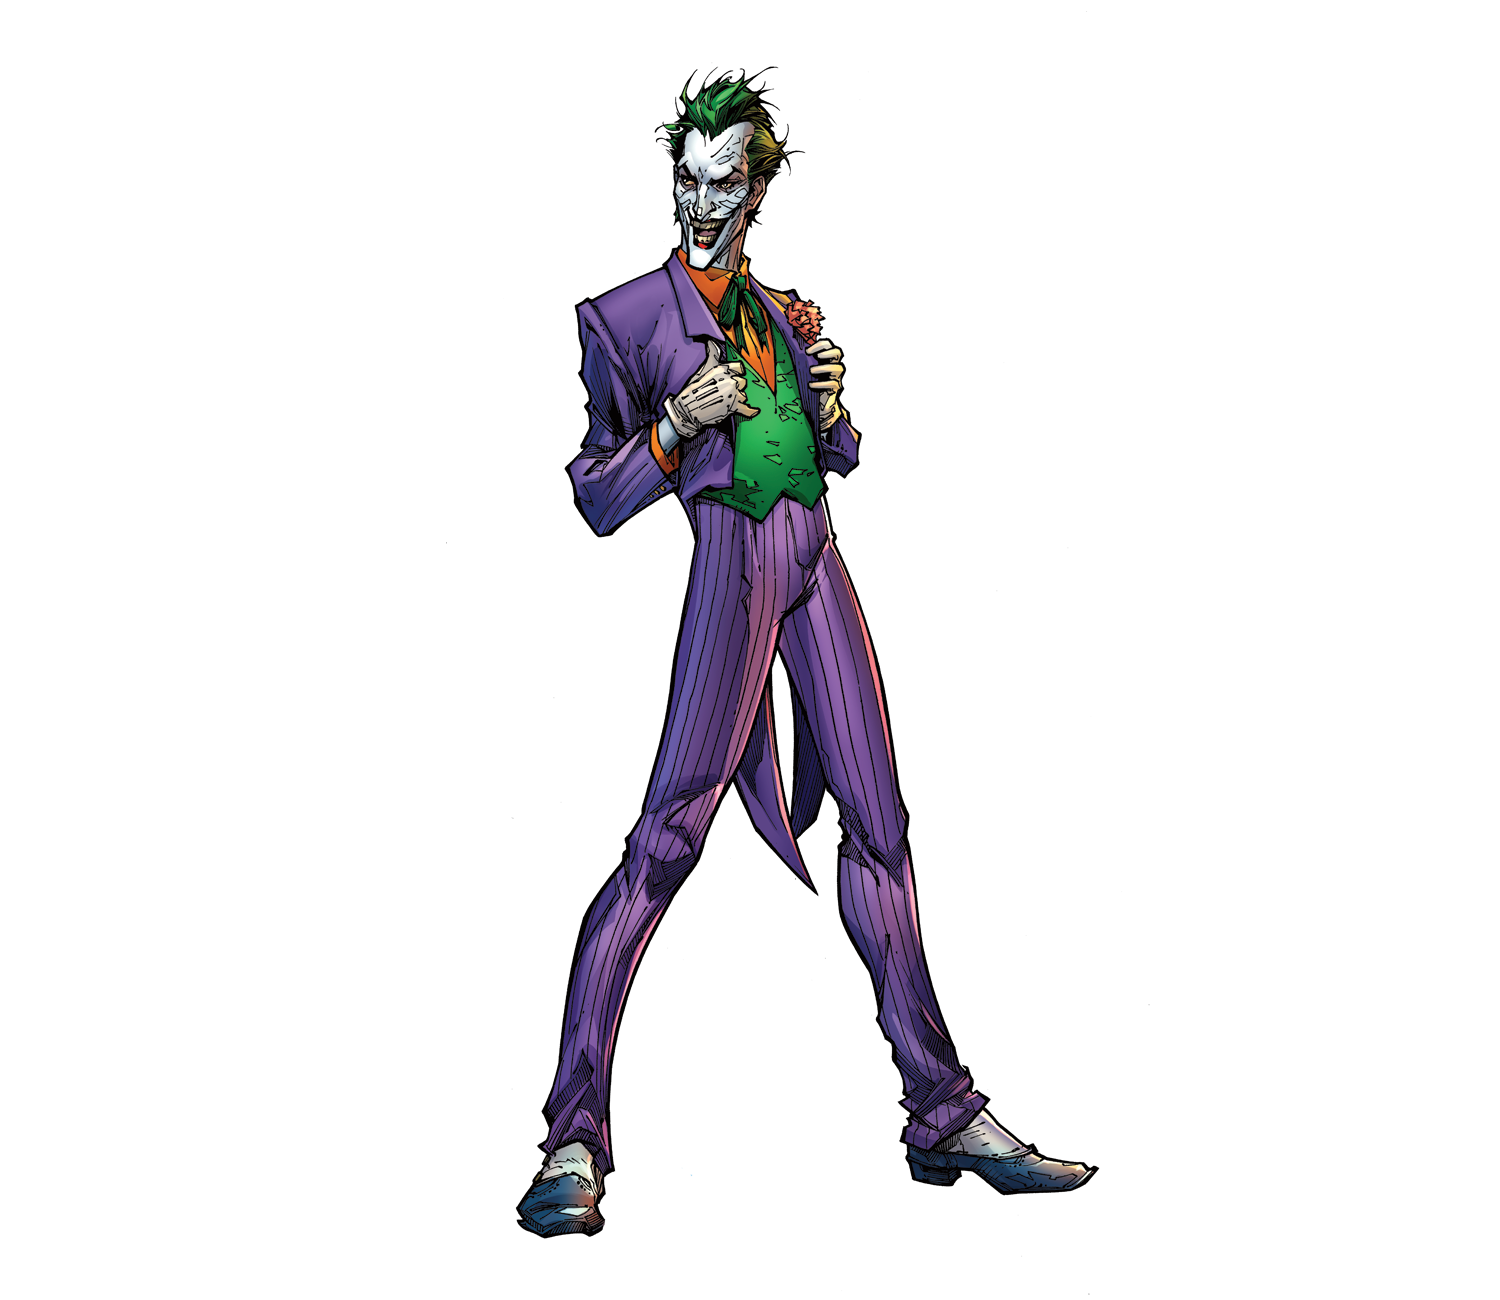 Batman Joker Hd PNG Image